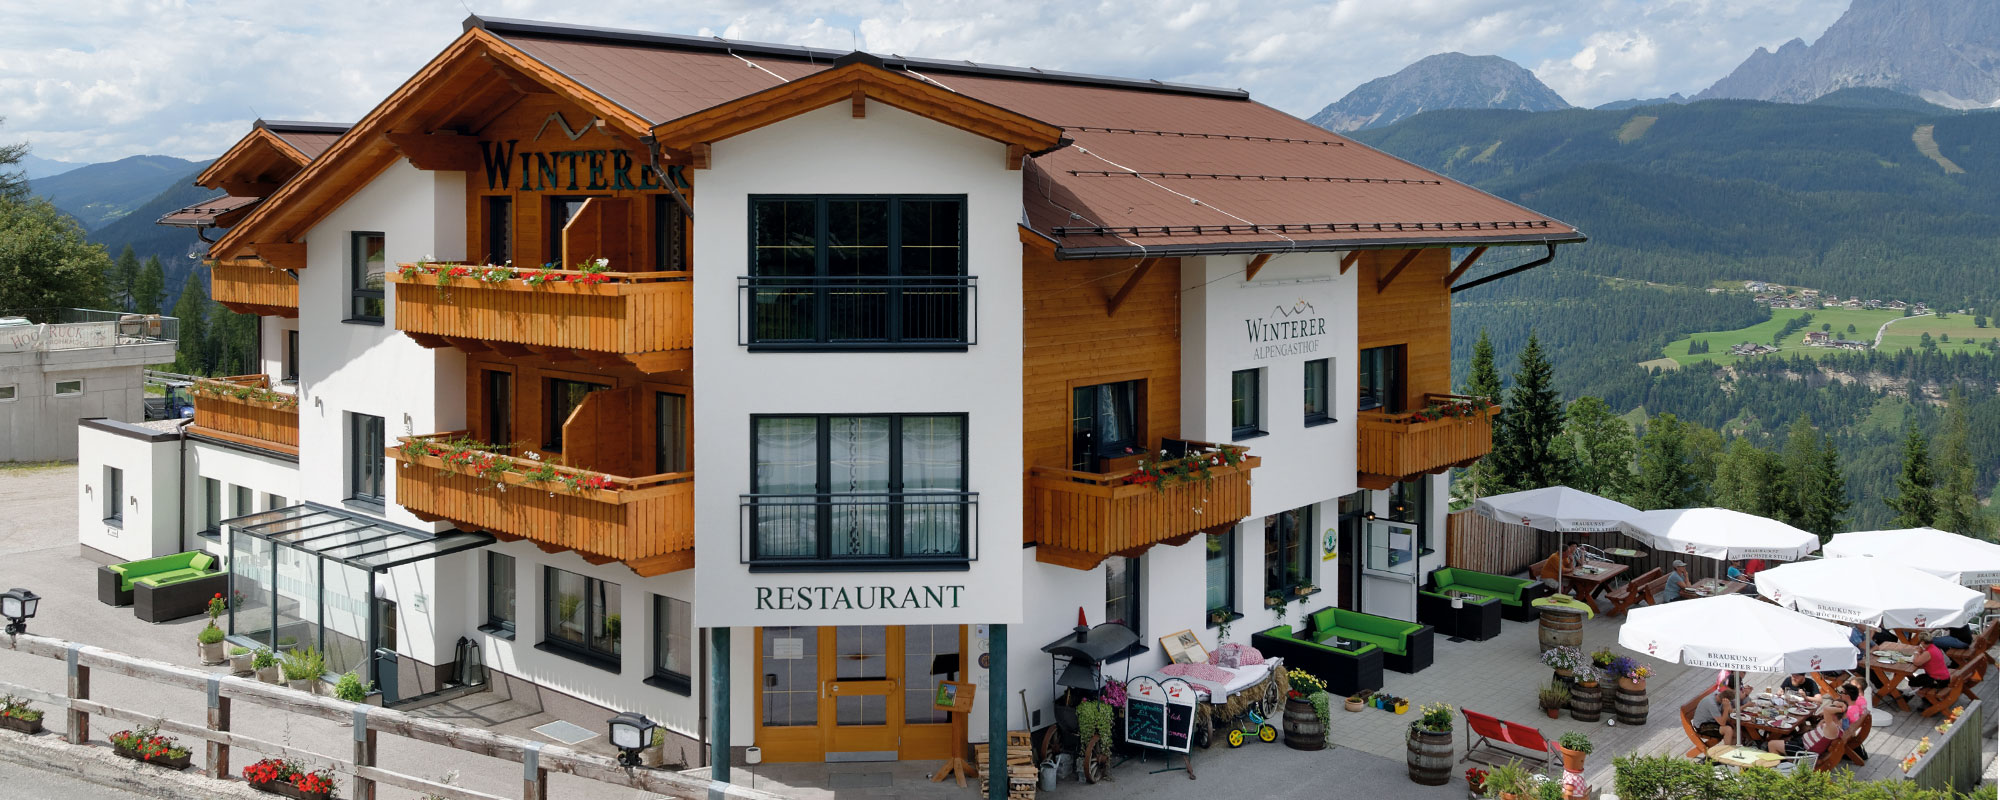 Das Hotel Winterer in Schladming